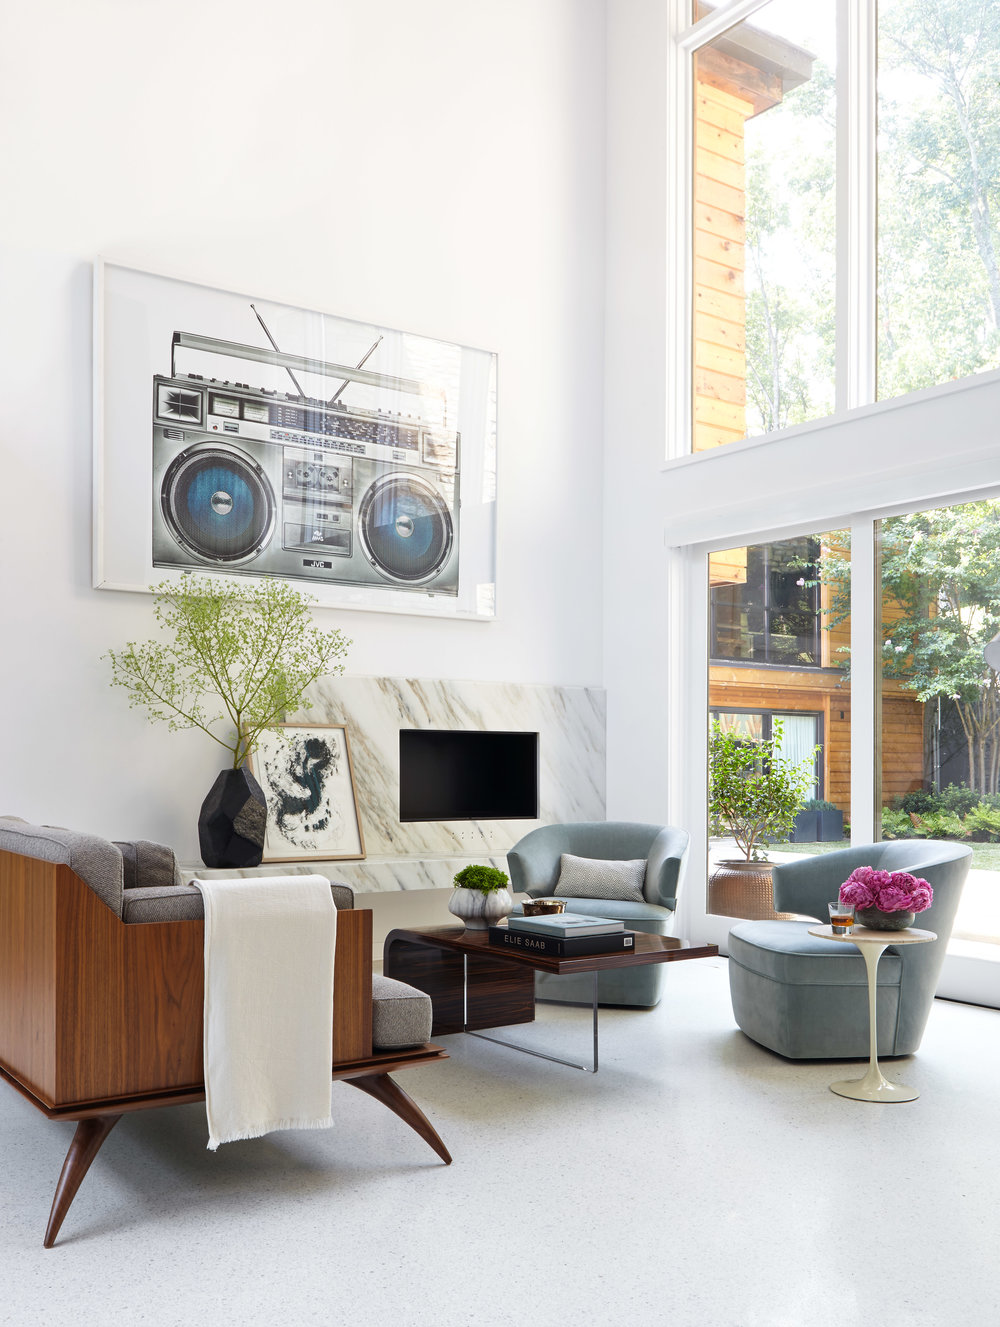 """The work of Nashville-based designer Benjamin Vandiver has caught Adie's eye. Here is a living room featured on his site from """" Gallery No. 3 """"."""